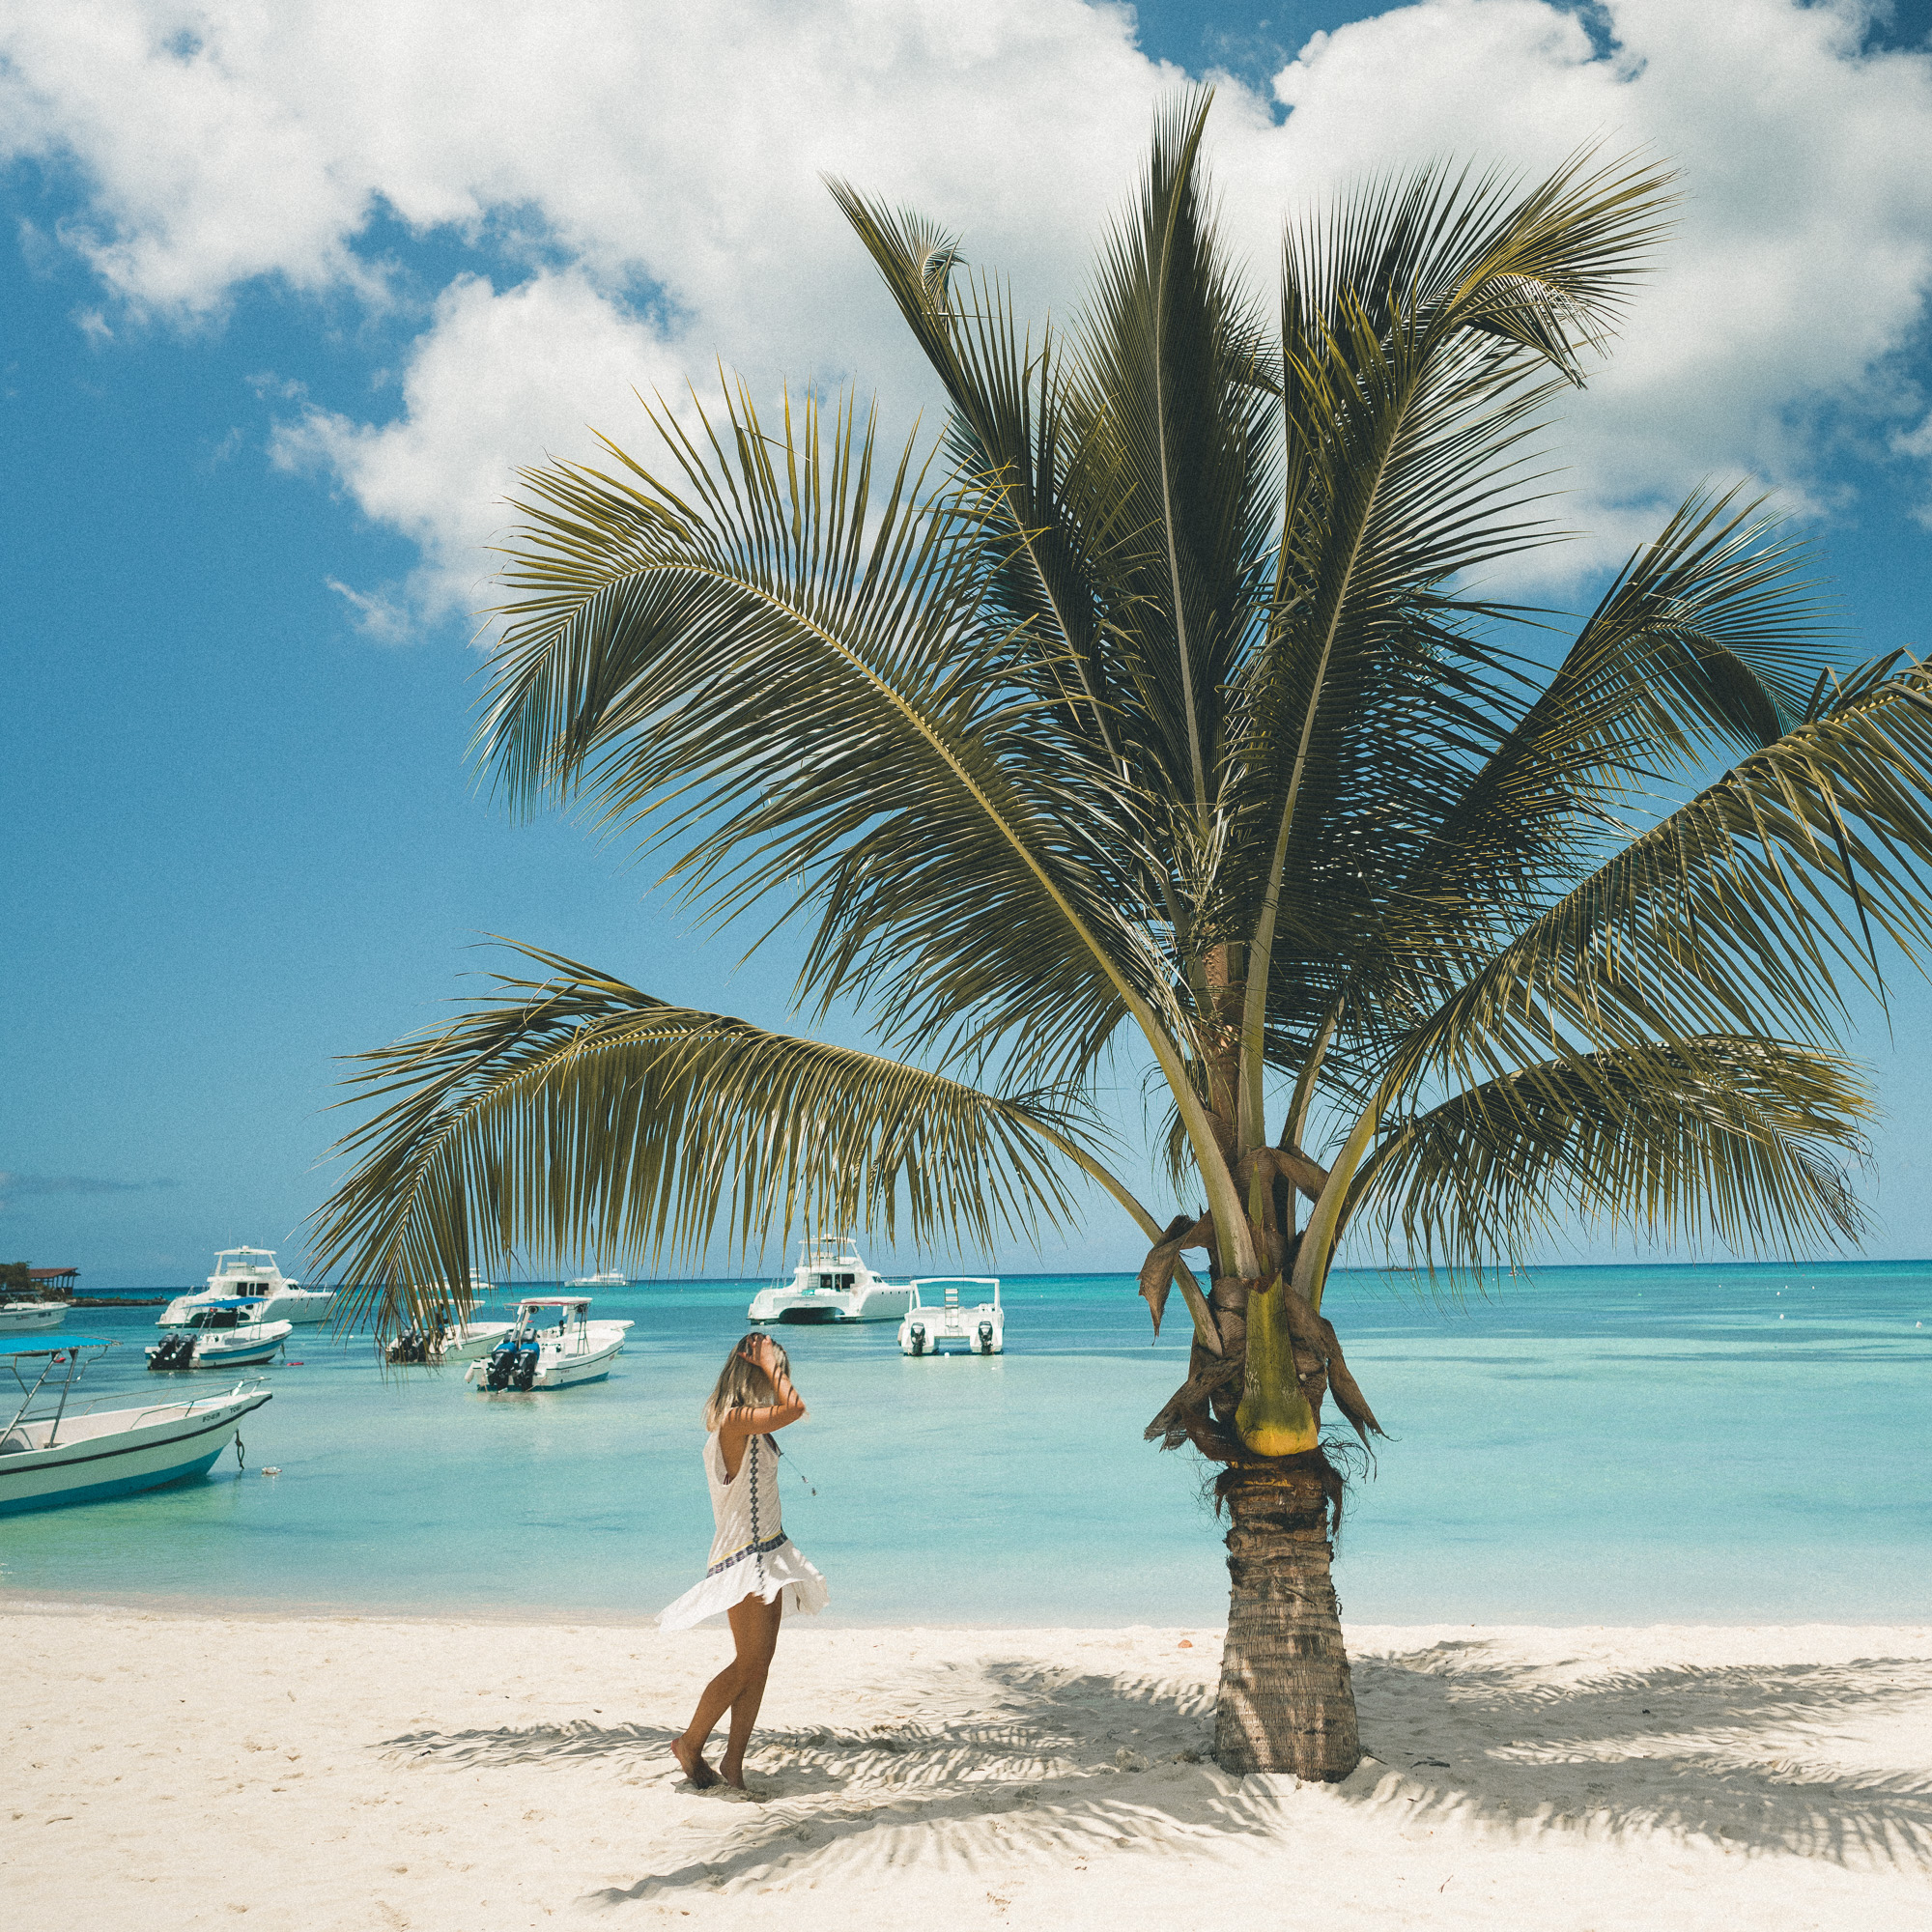 Discovering paradise in punta cana dominican republic for Punta cana dominican republic vacation